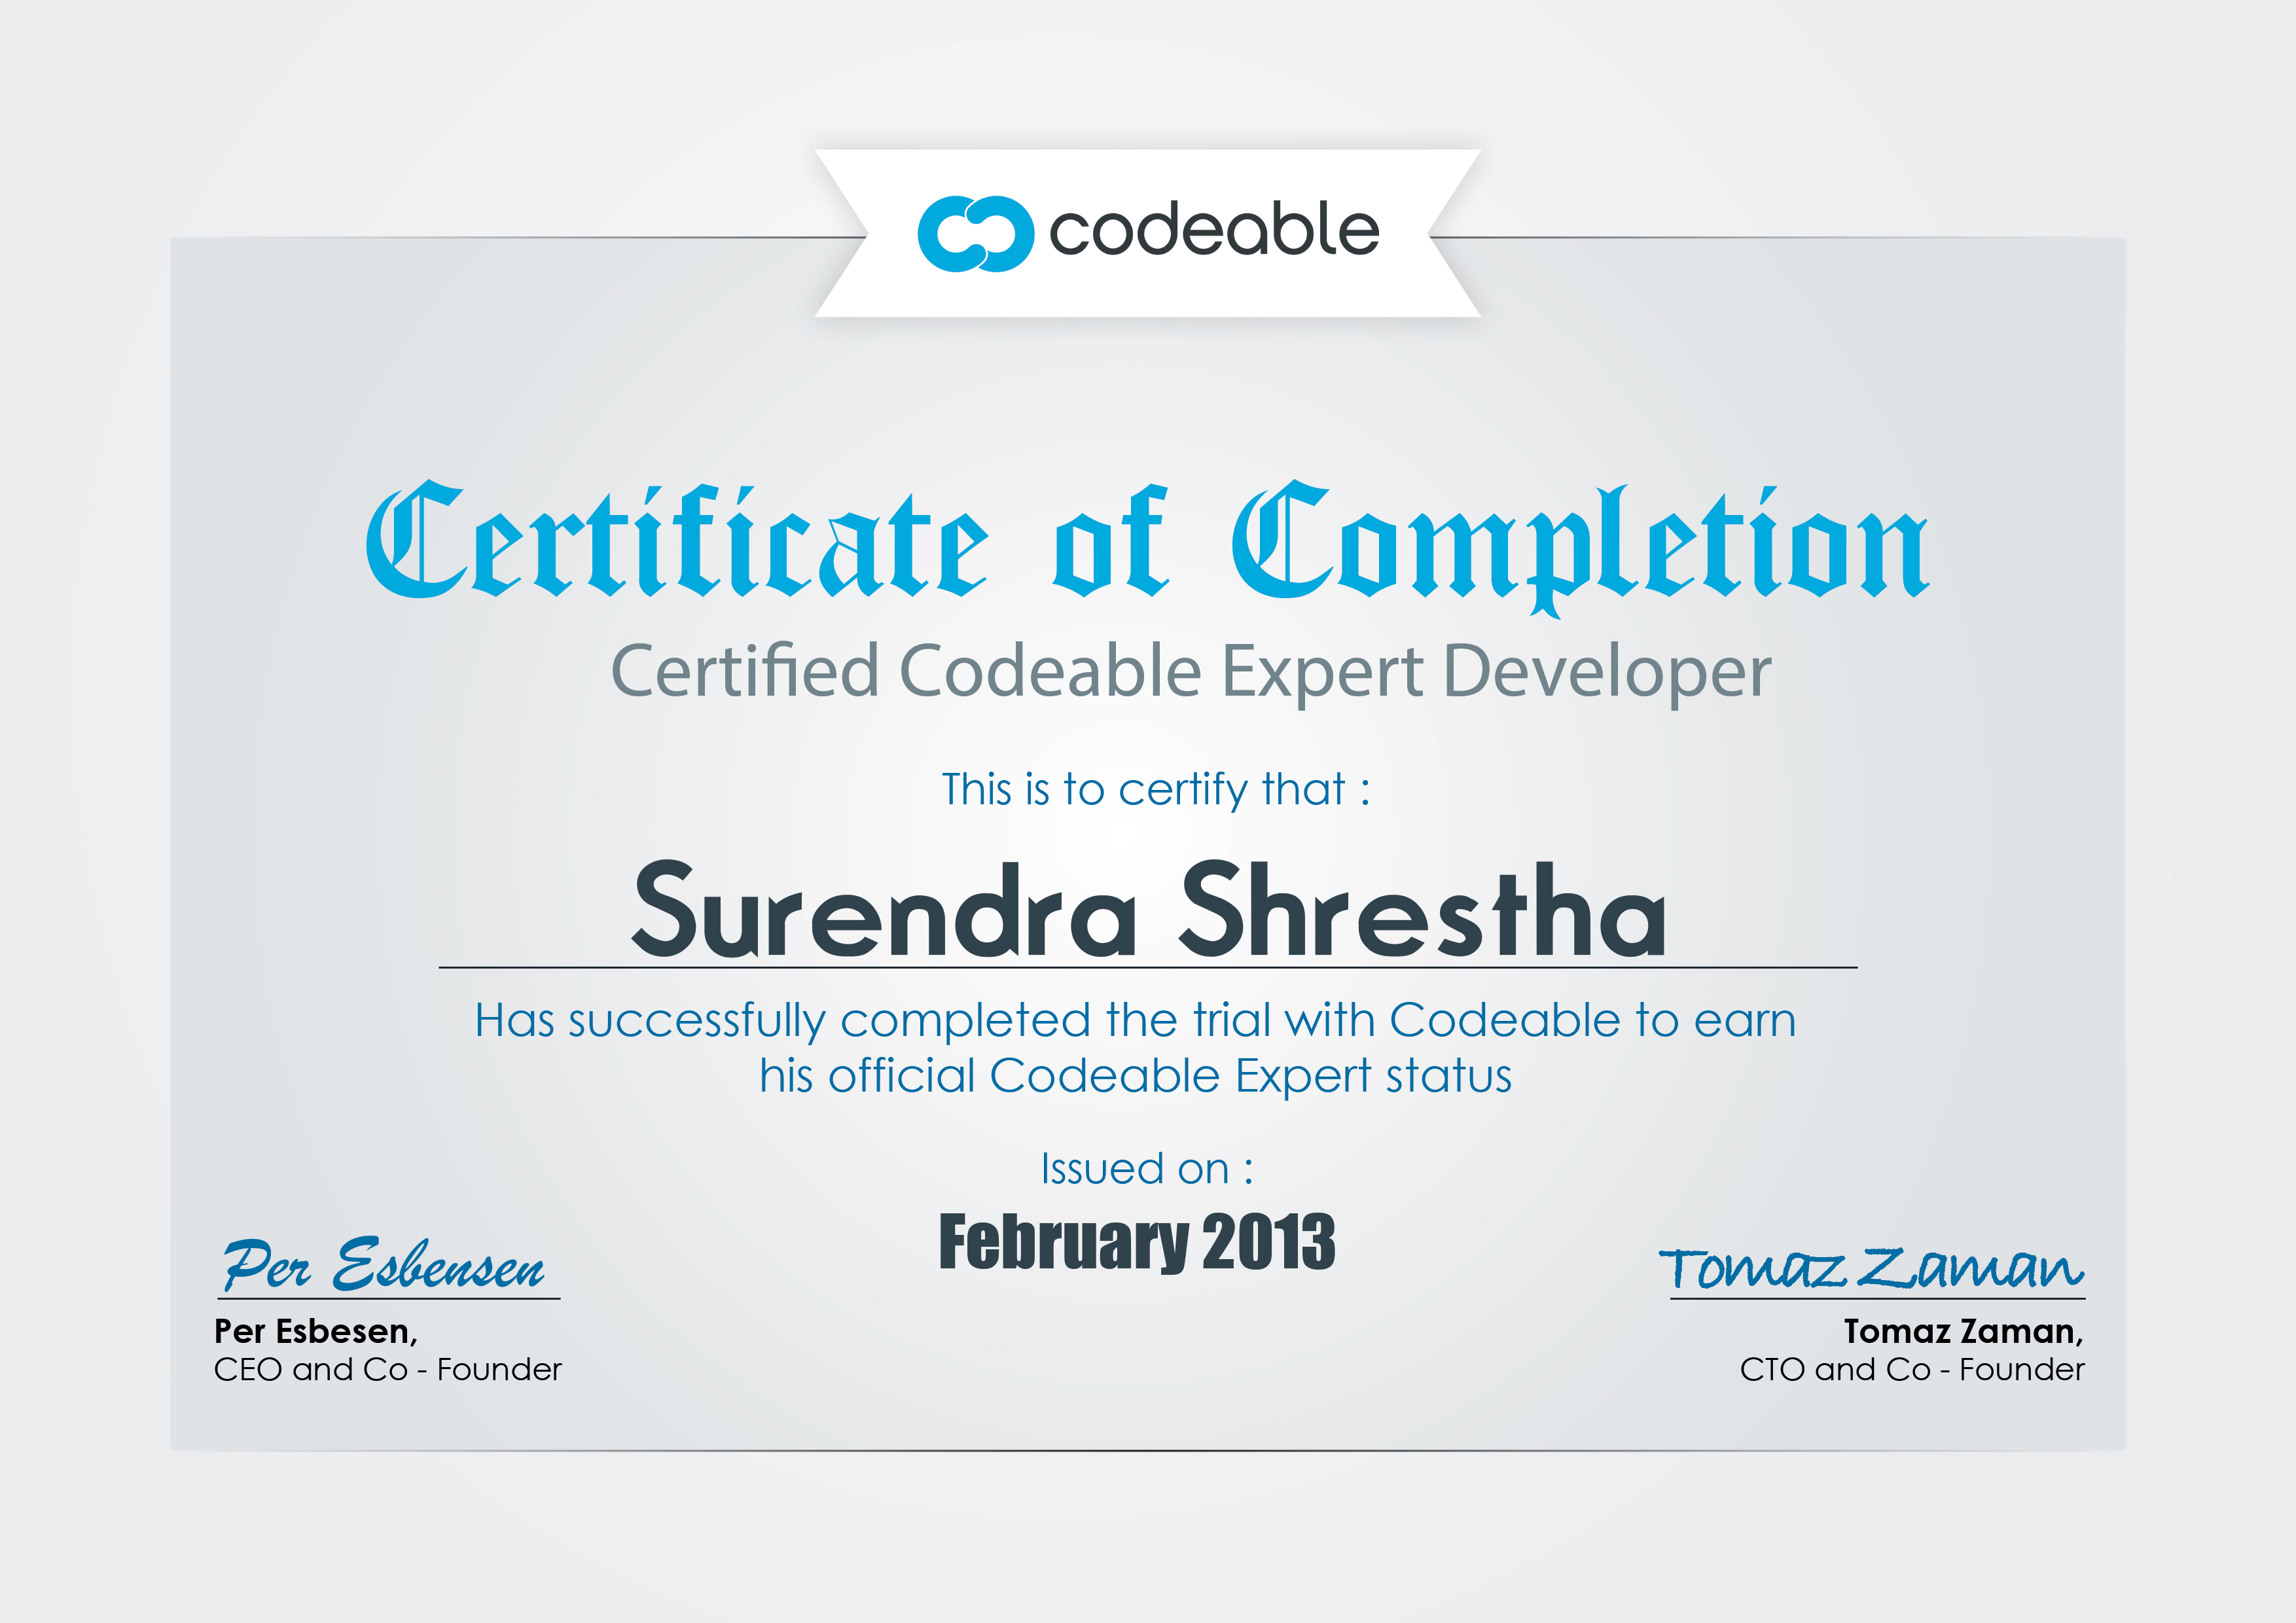 Certified Codeable Expert Developer: Surendra